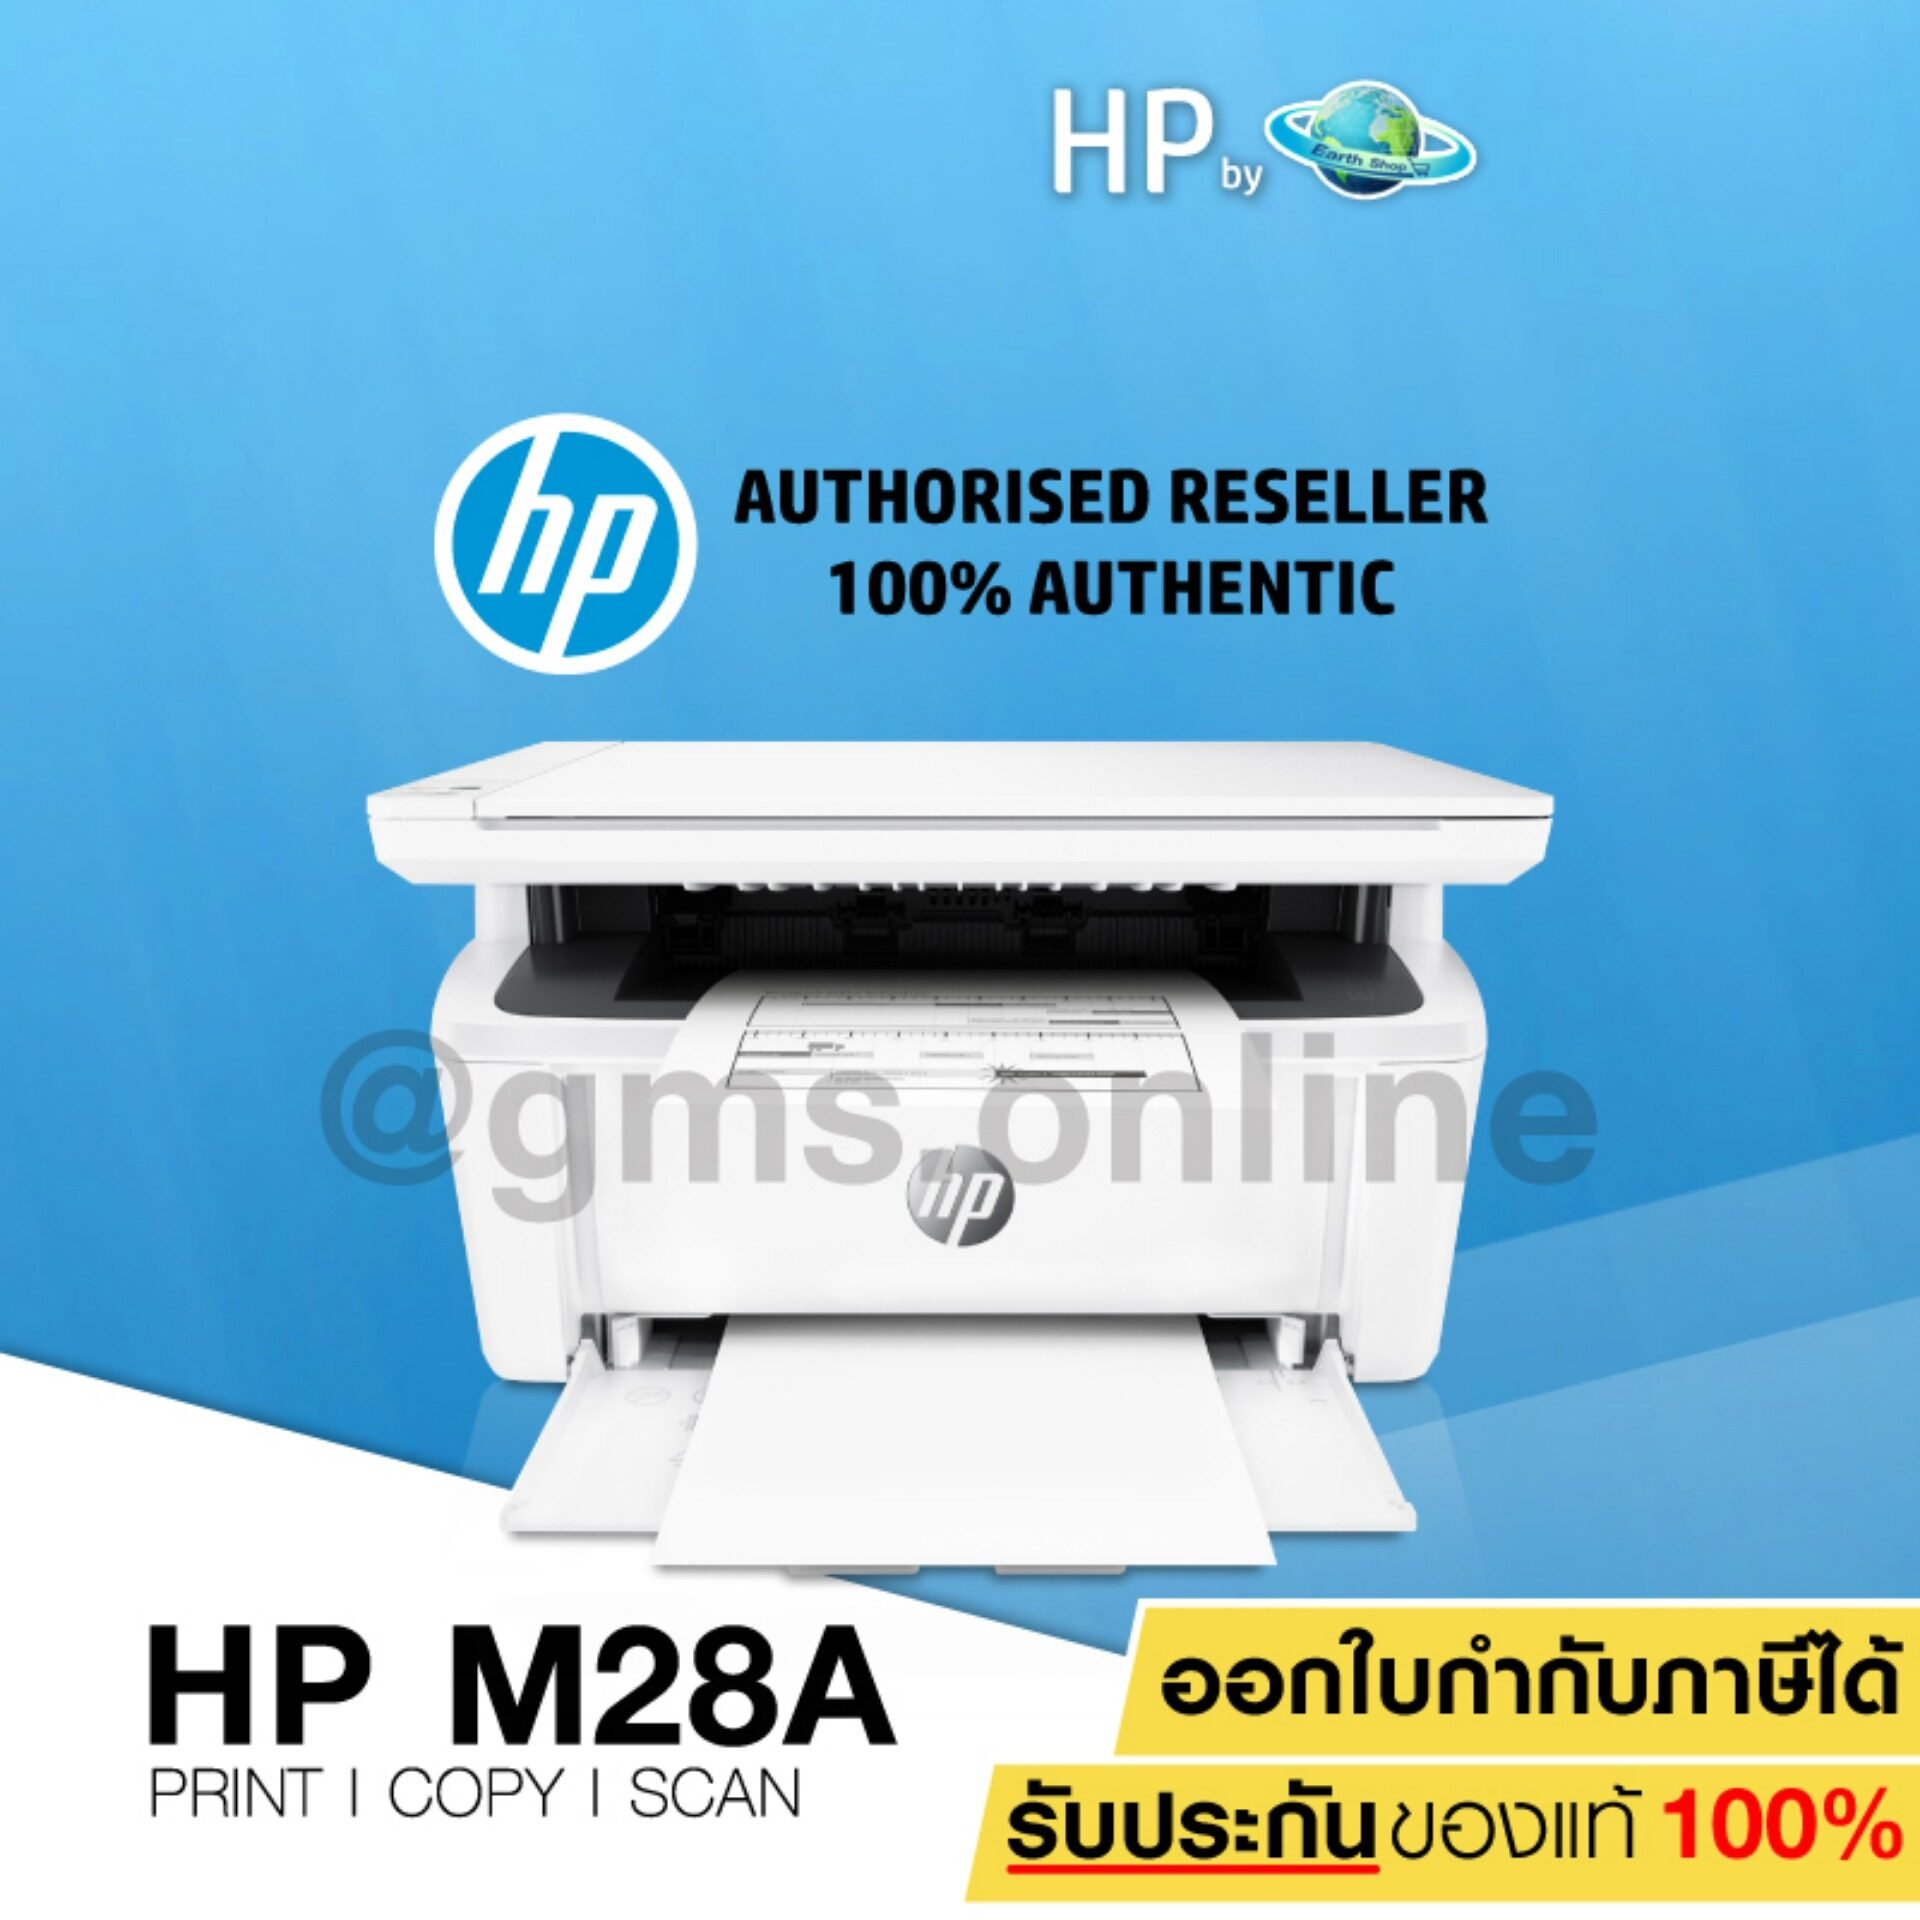 Hp Laserjet Pro Mfp M28a Multifunction Laser Printer พร้อมหมึกแท้ 1 ชุด.